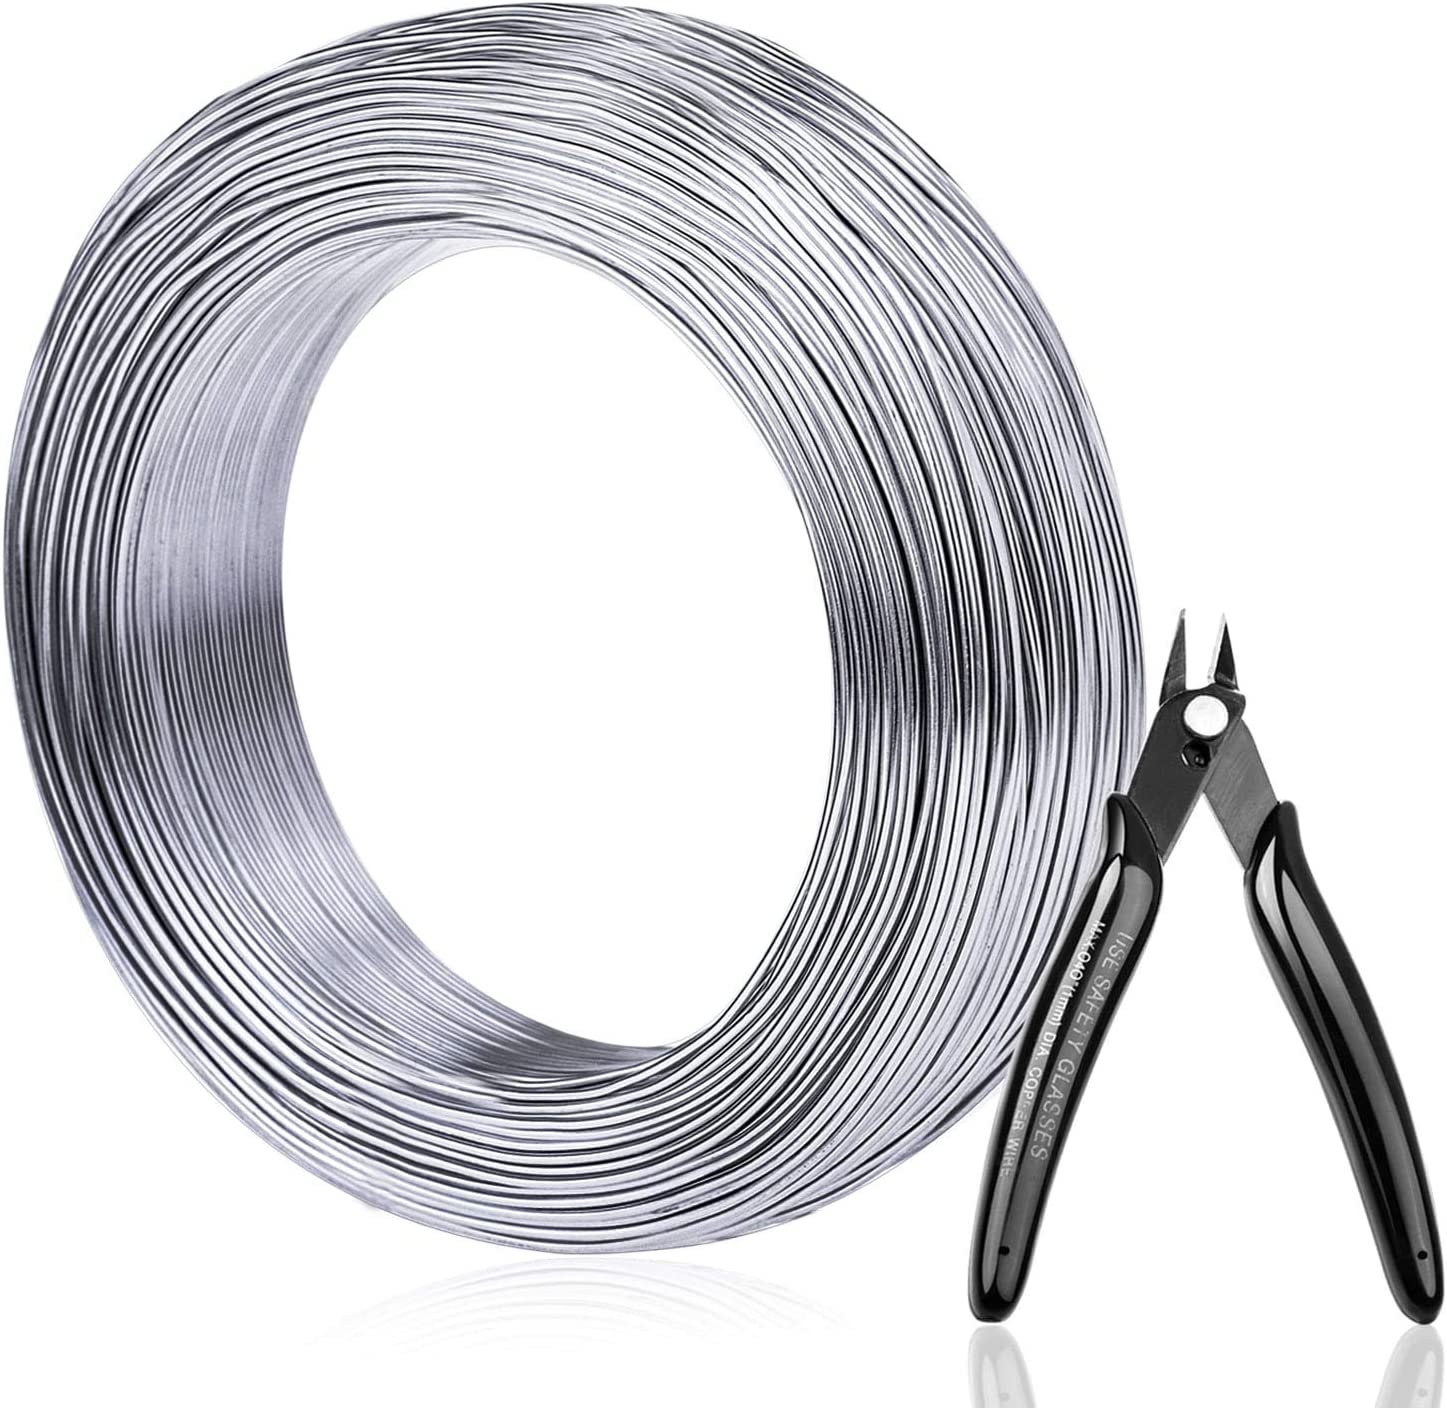 Aluminum Wire, Anezus 18 Gauge 328 FT Metal Wire Bendable Sculpting Aluminum Wire 1mm for Crafts Jewelry Making Beading Floral (Silver)